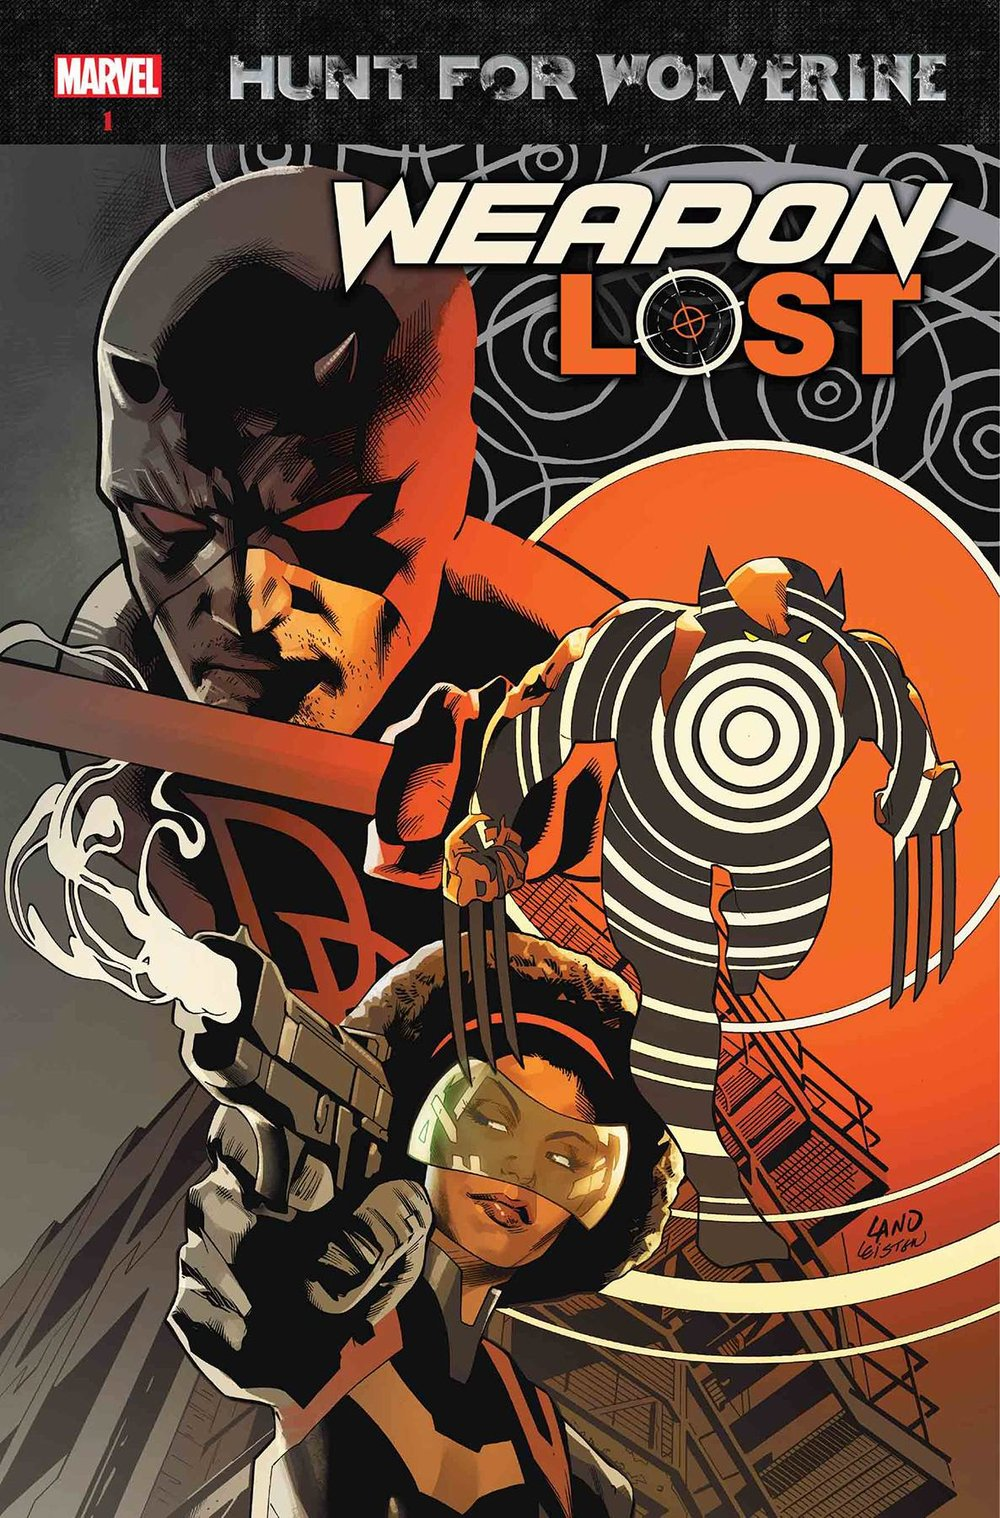 HUNT FOR WOLVERINE WEAPON LOST #1